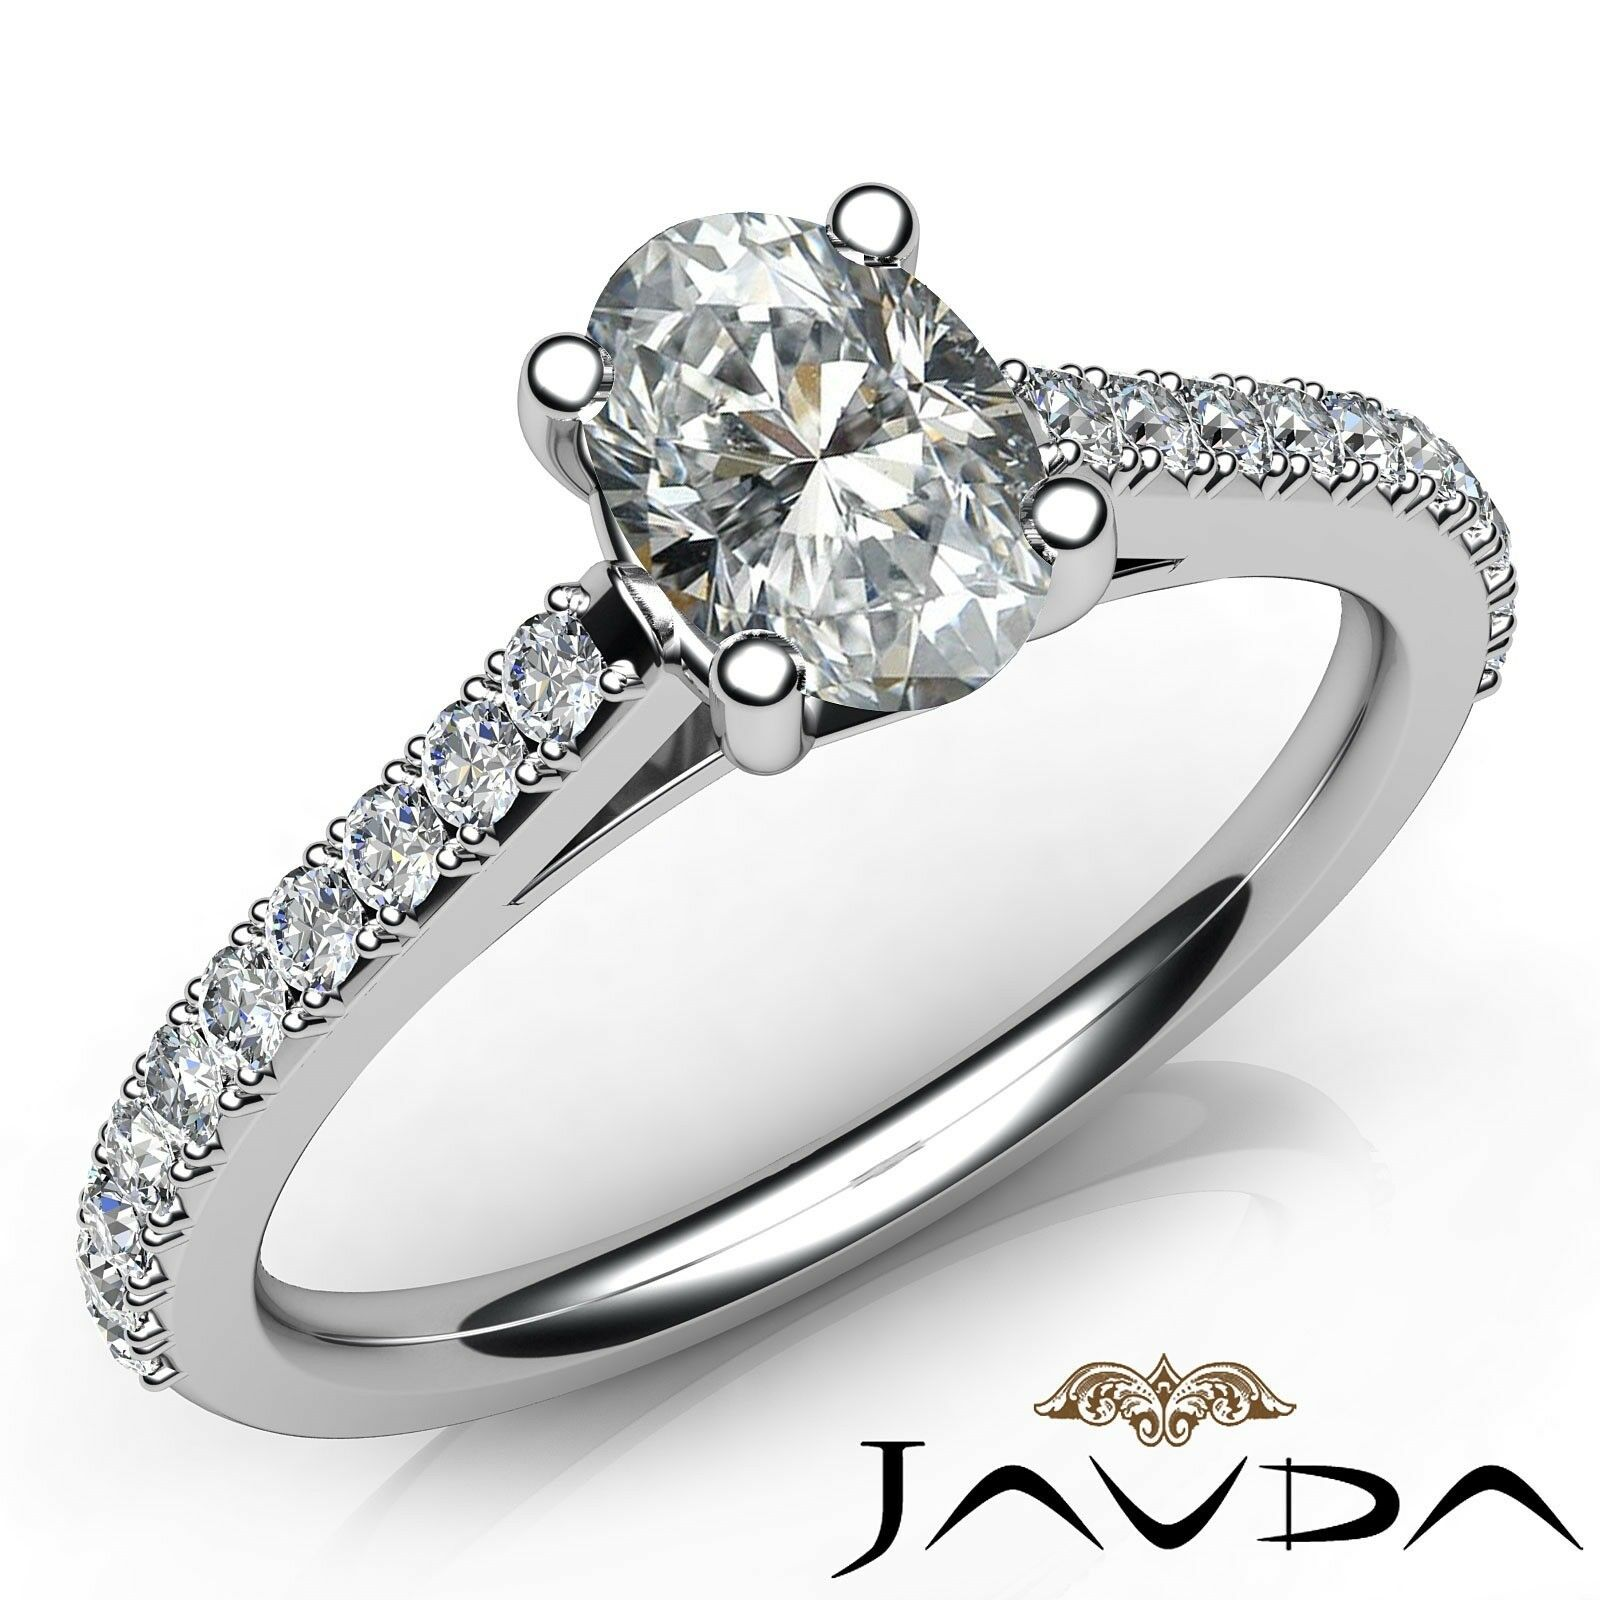 0.82ctw Comfort Fit Oval Diamond Engagement Ring GIA J-VVS2 White Gold Women New